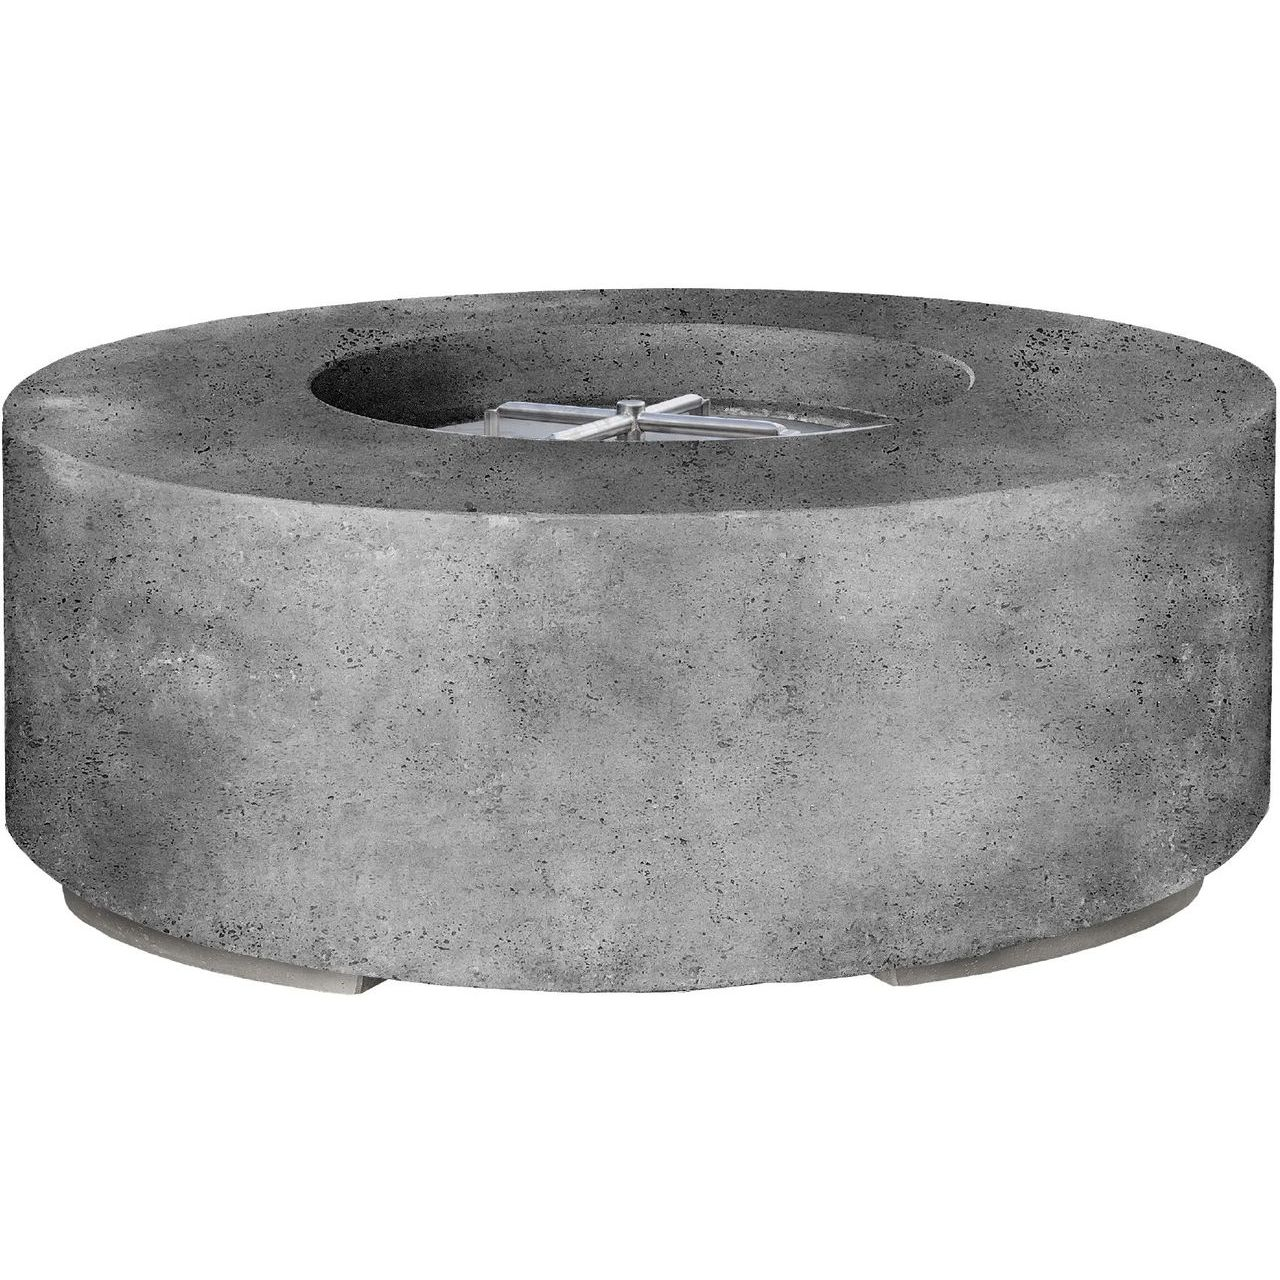 Prism Hardscapes Rotondo Fire Bowl in Pewter - LP